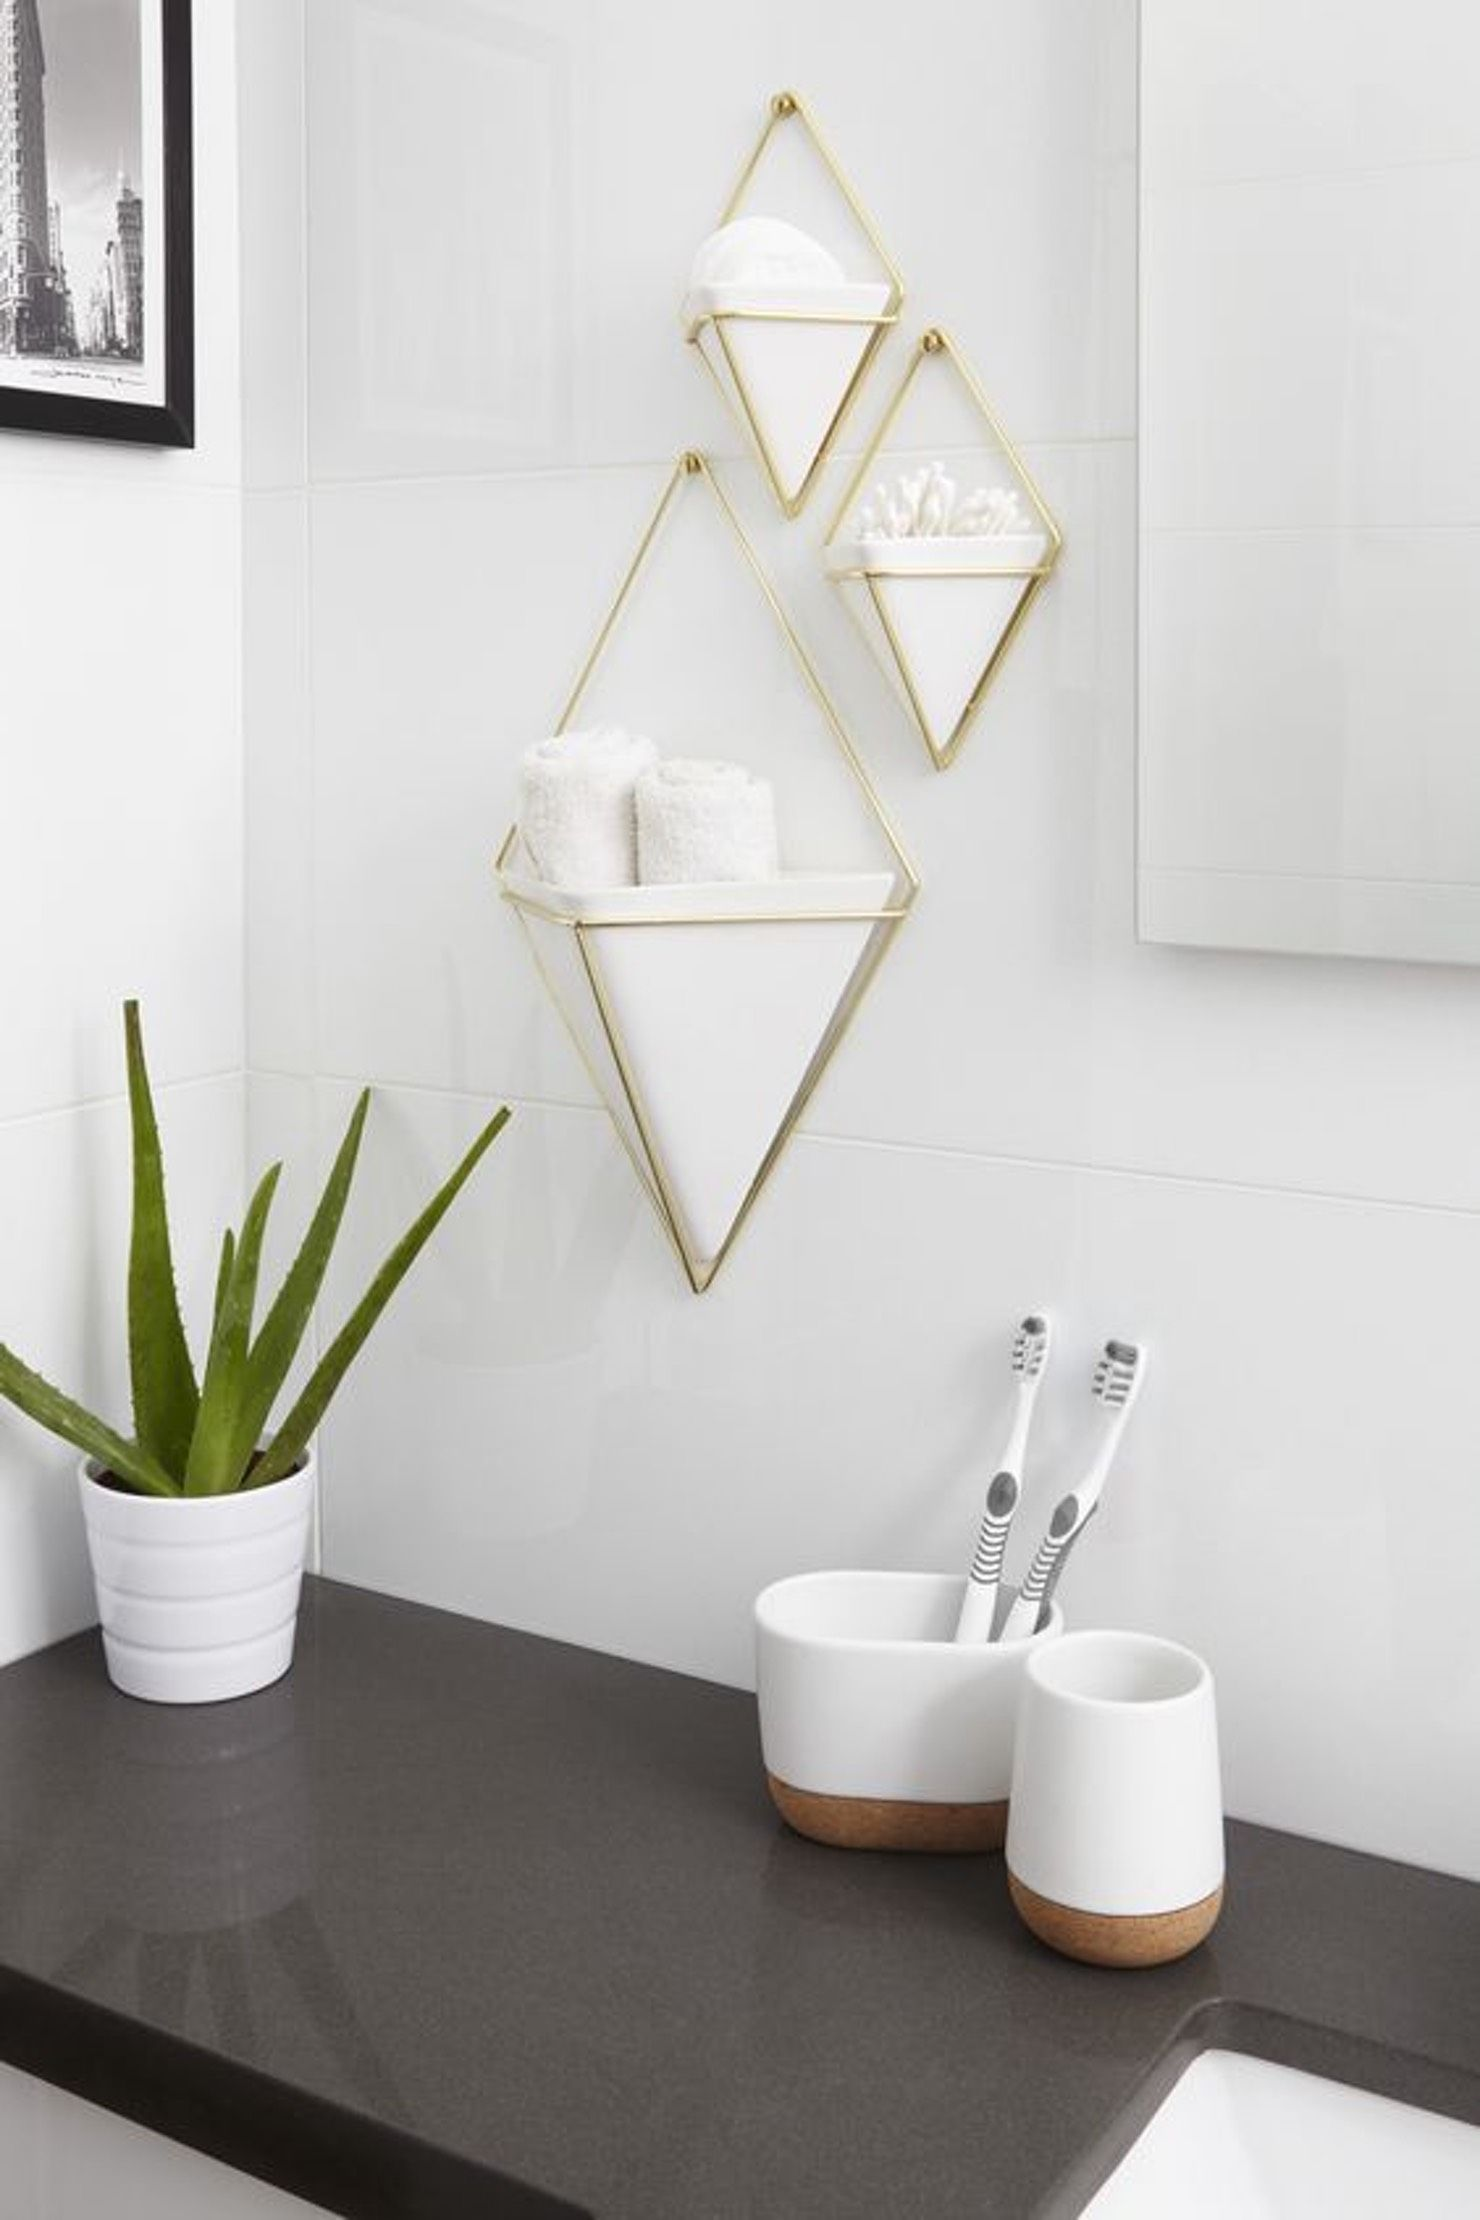 Pinterest Is Home To Some Pretty Smart Ideas I Think My Favorite Thing To Do On There Is Search For Target Wall Decor Home Decor Accessories Amazing Bathrooms